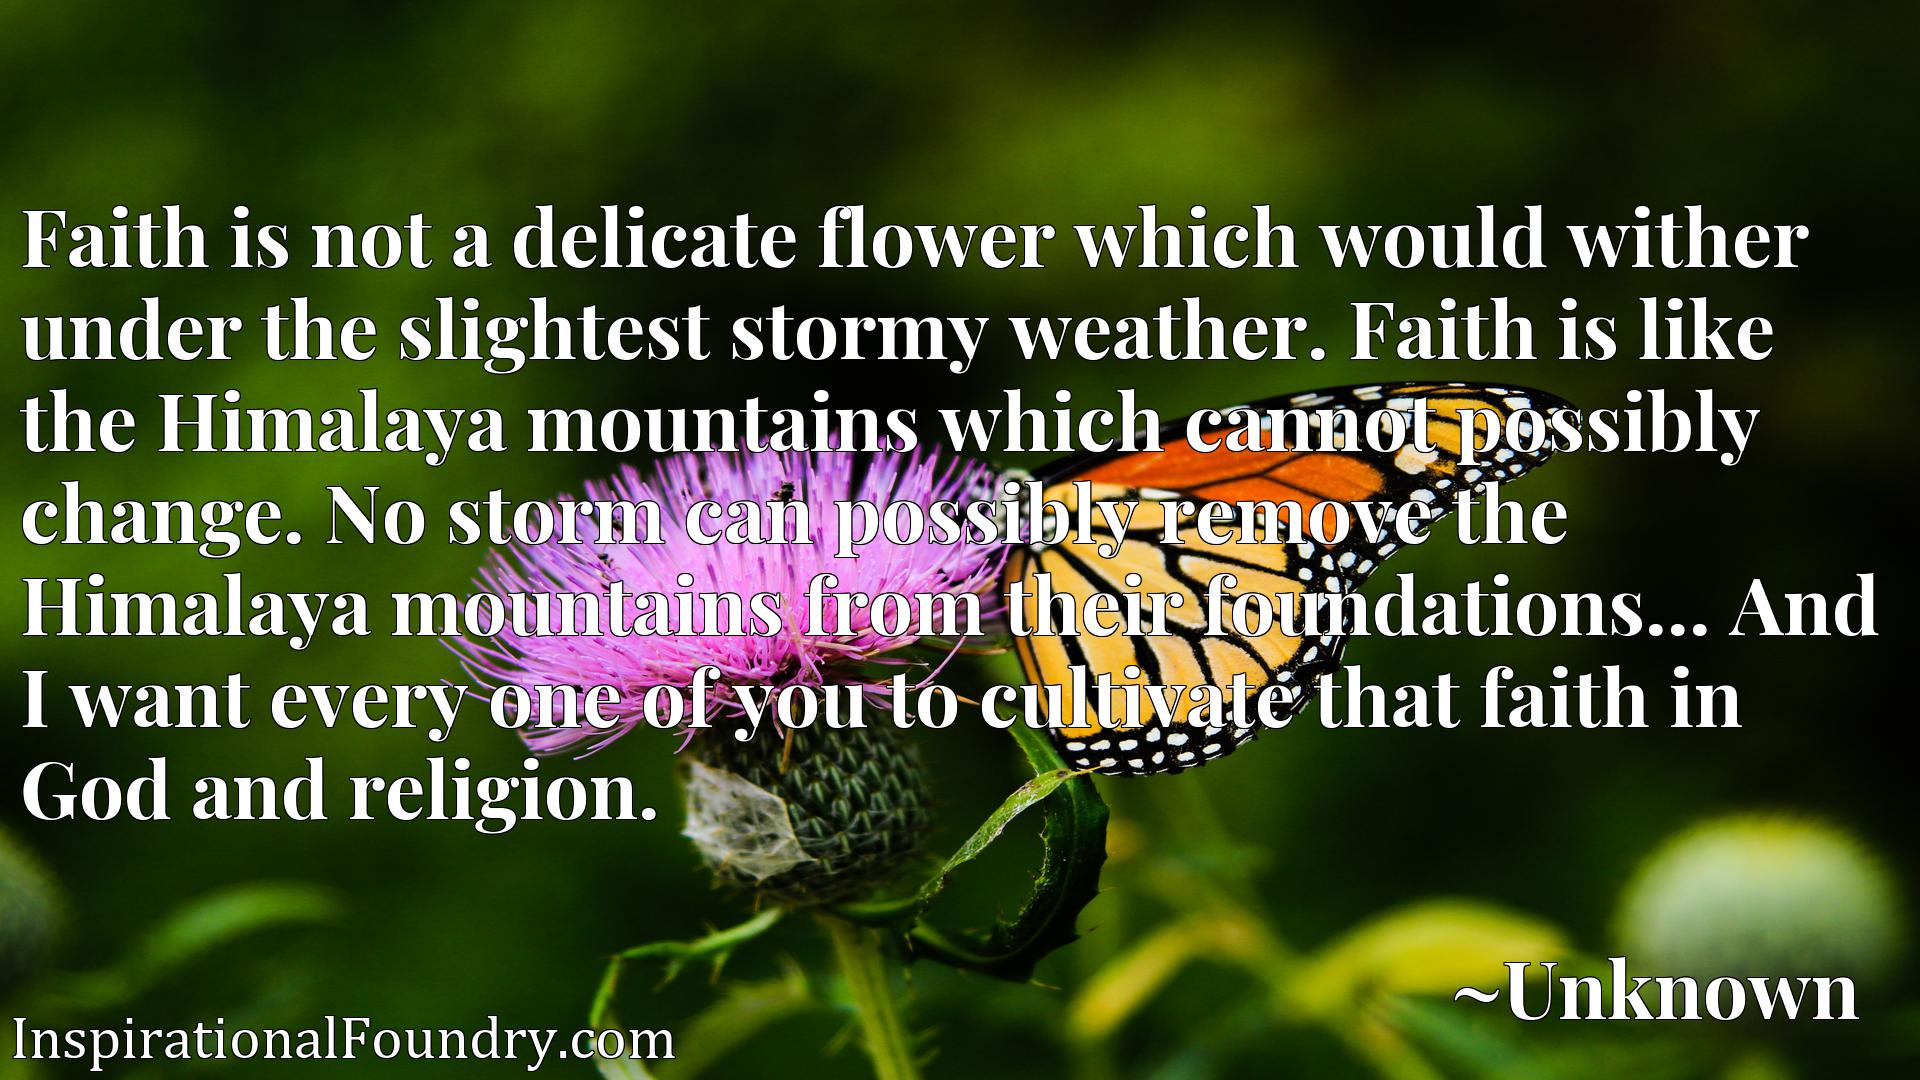 Faith is not a delicate flower which would wither under the slightest stormy weather. Faith is like the Himalaya mountains which cannot possibly change. No storm can possibly remove the Himalaya mountains from their foundations... And I want every one of you to cultivate that faith in God and religion.